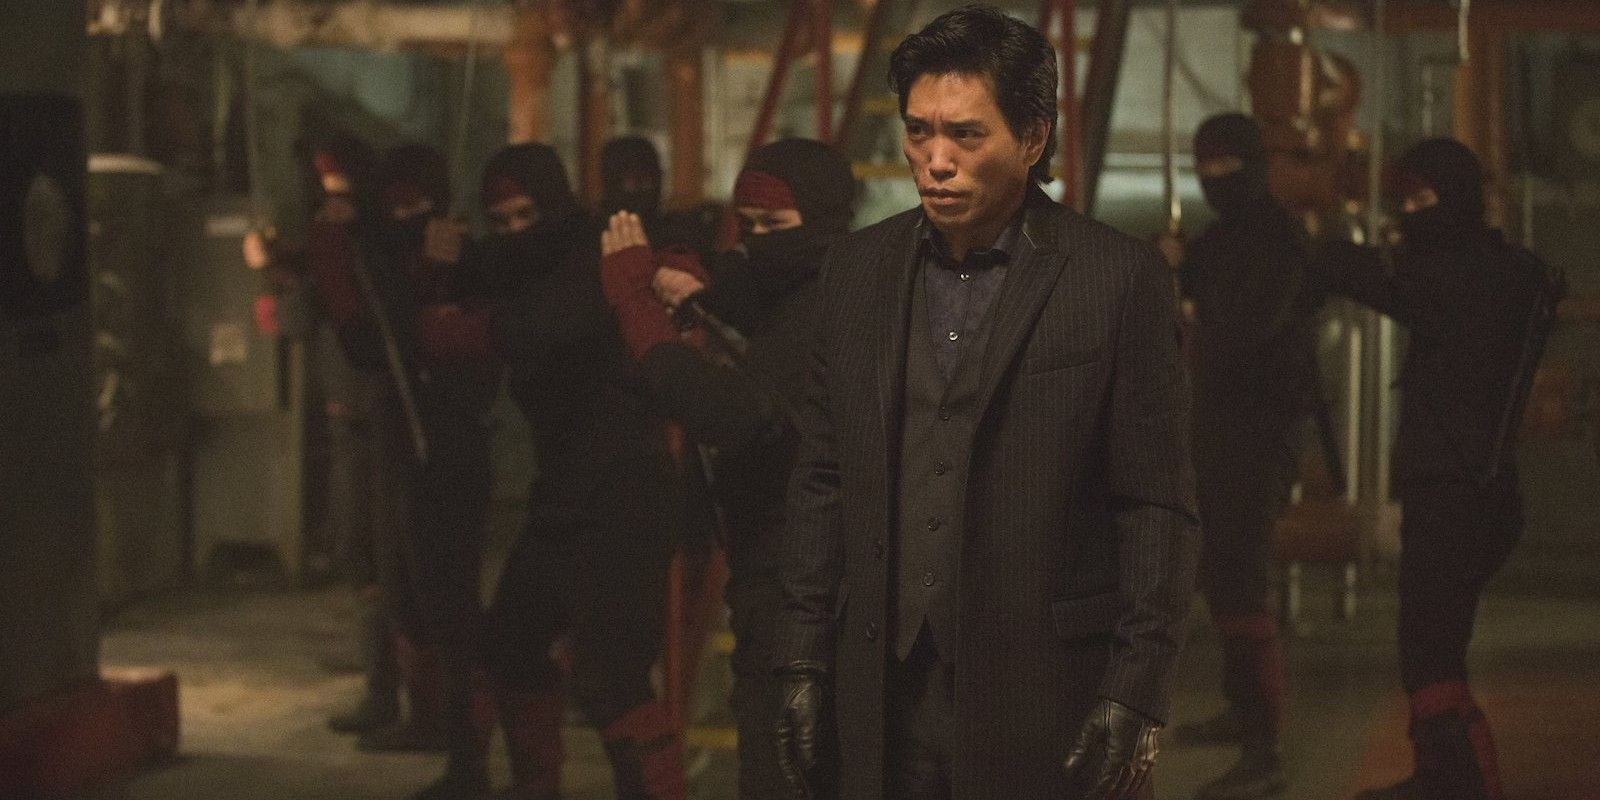 Daredevil: Peter Shinkoda Breaks Down His Abysmal Pay Rate for the Netflix Series